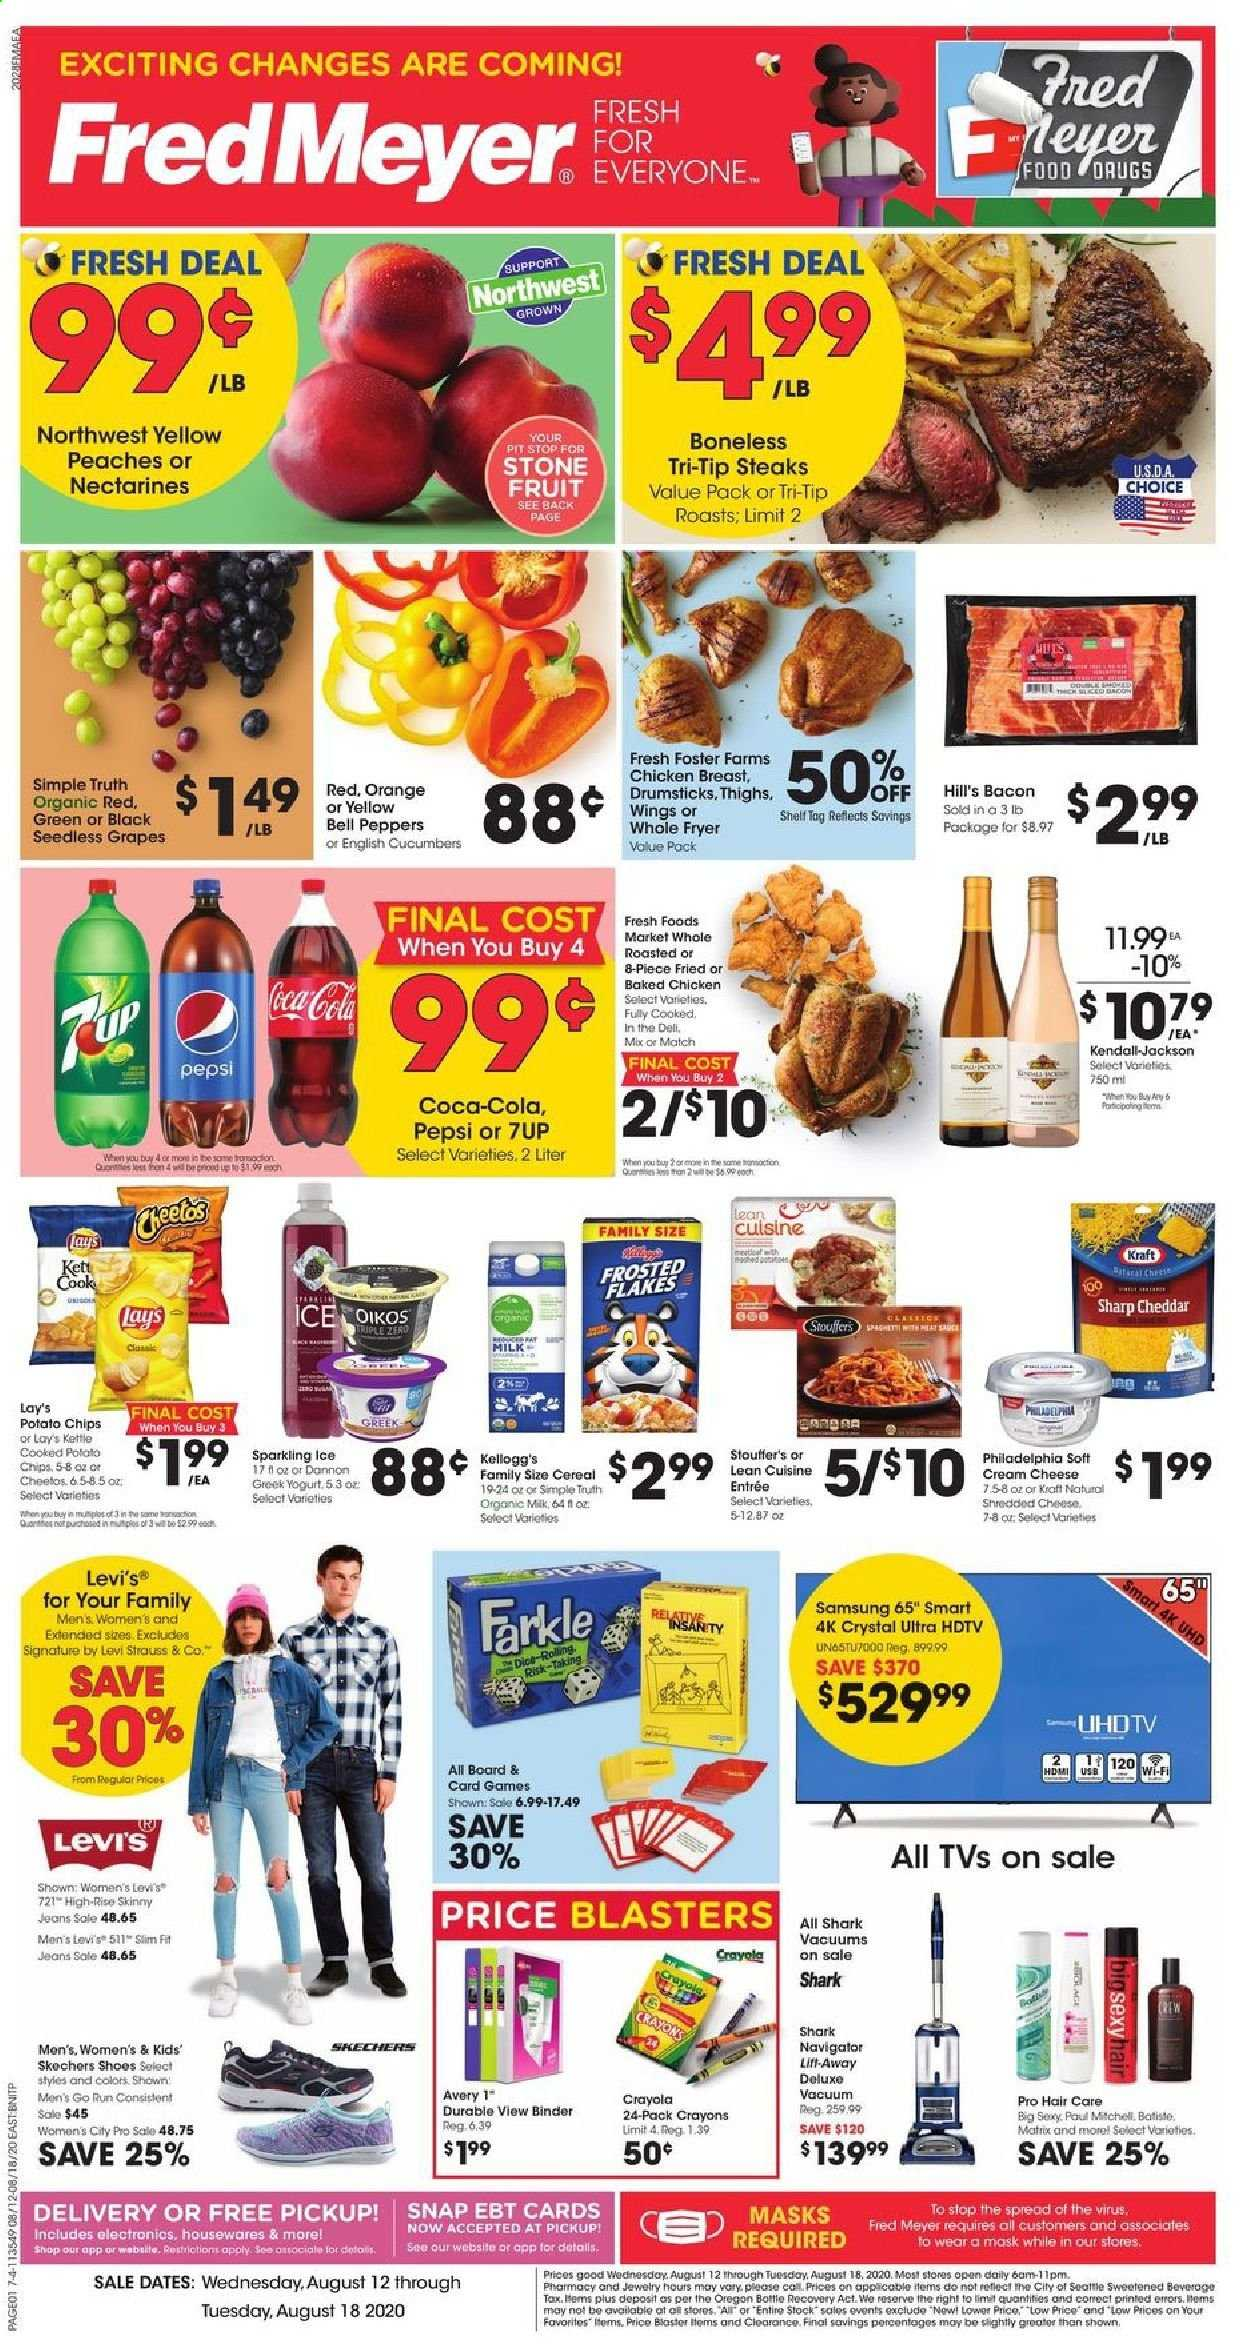 Fred Meyer Flyer - 08.12.2020 - 08.18.2020 - Sales products - bacon, bell peppers, cereals, coca-cola, cream cheese, cucumbers, dates, fryer, grapes, greek yogurt, mask, nectarines, samsung, seedless grapes, sharp, shelf, shoes, shredded cheese, sole, vacuum, wifi, yogurt, hdmi, hdtv, jeans, philadelphia, potato chips, cheddar, cheetos, chicken, chicken breast, peaches, pepsi, orange, organic, chips, organic milk, cheese, game, jewelry, cereal, lay's, board, binder, flakes, fruit, wings, peppers, kettle, peache. Page 1.